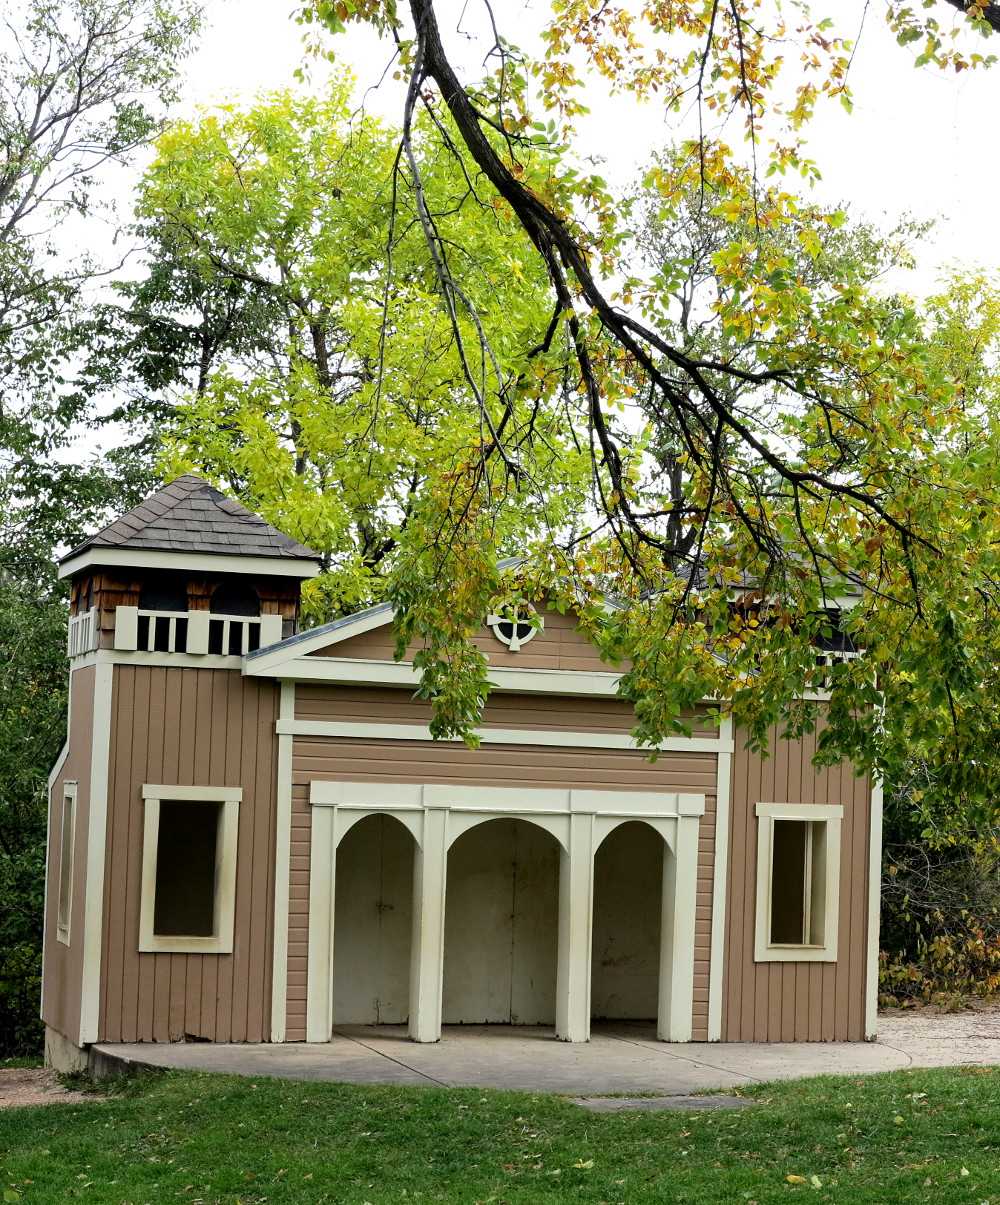 A building in the playground at the Chautauqua in Boulder Double-Barrelled Travel